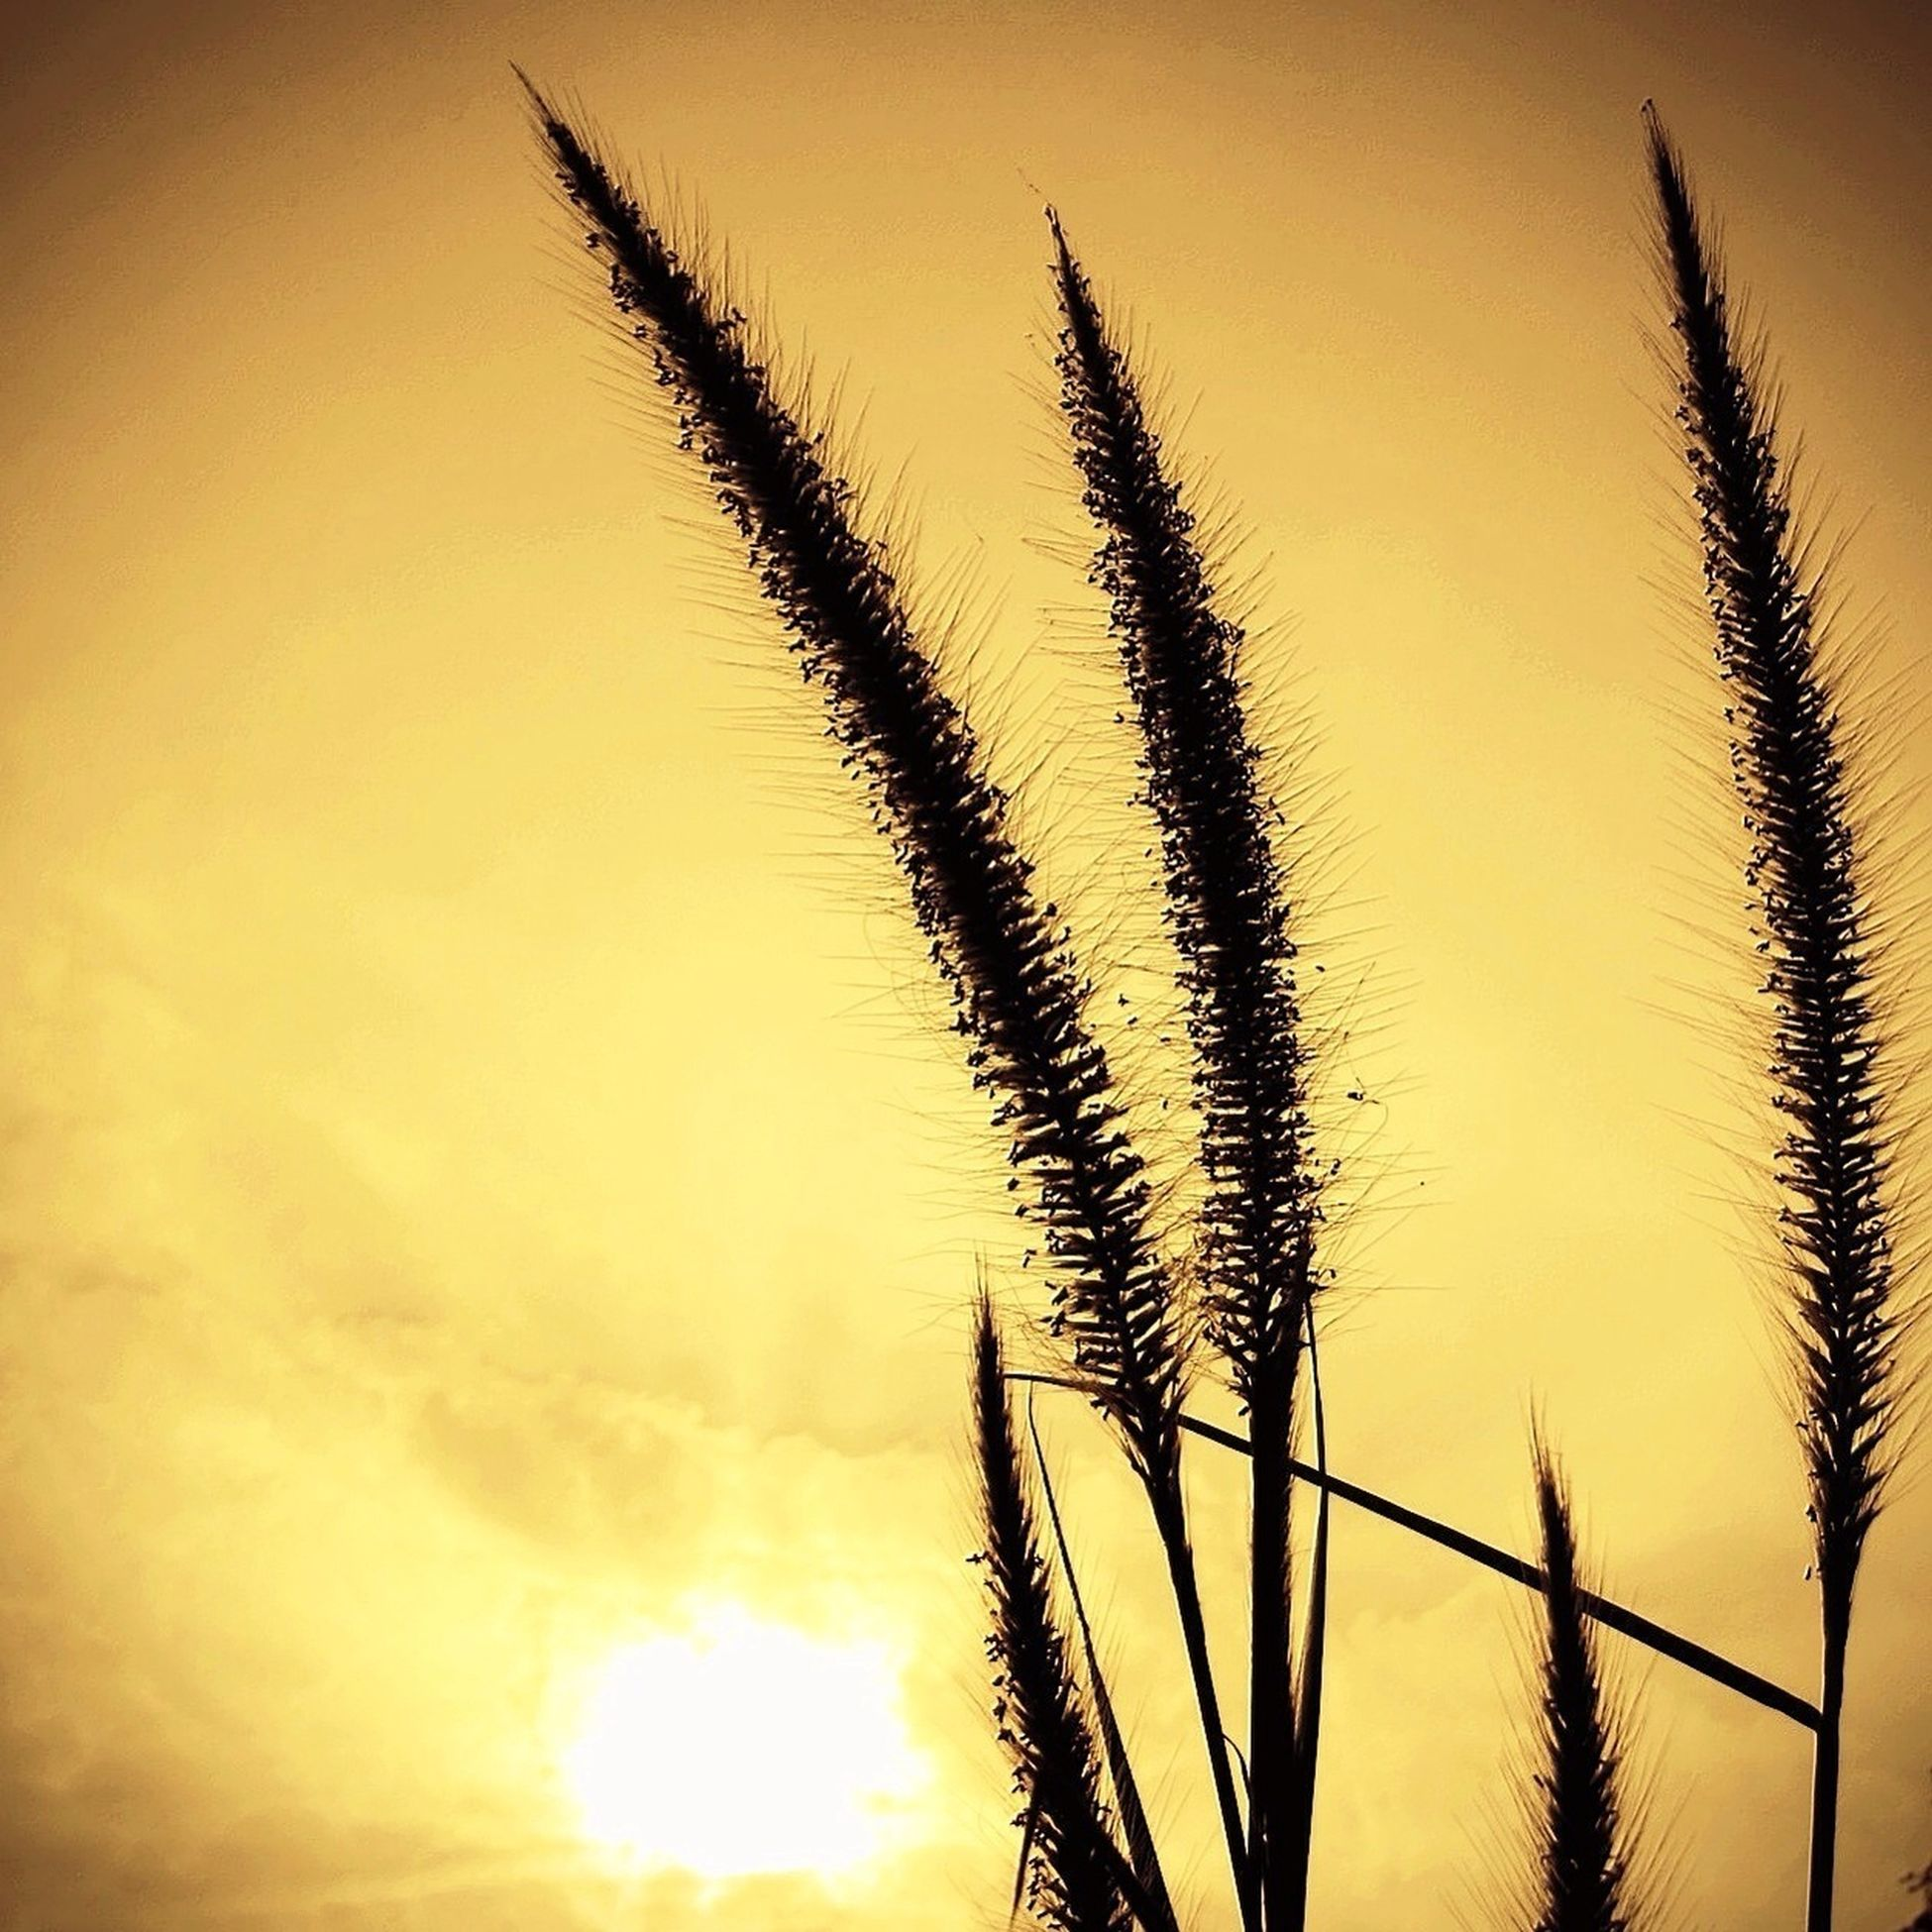 sunset, silhouette, sun, orange color, sky, tranquility, beauty in nature, palm tree, nature, growth, scenics, tranquil scene, low angle view, idyllic, sunlight, outdoors, no people, plant, cloud, tree